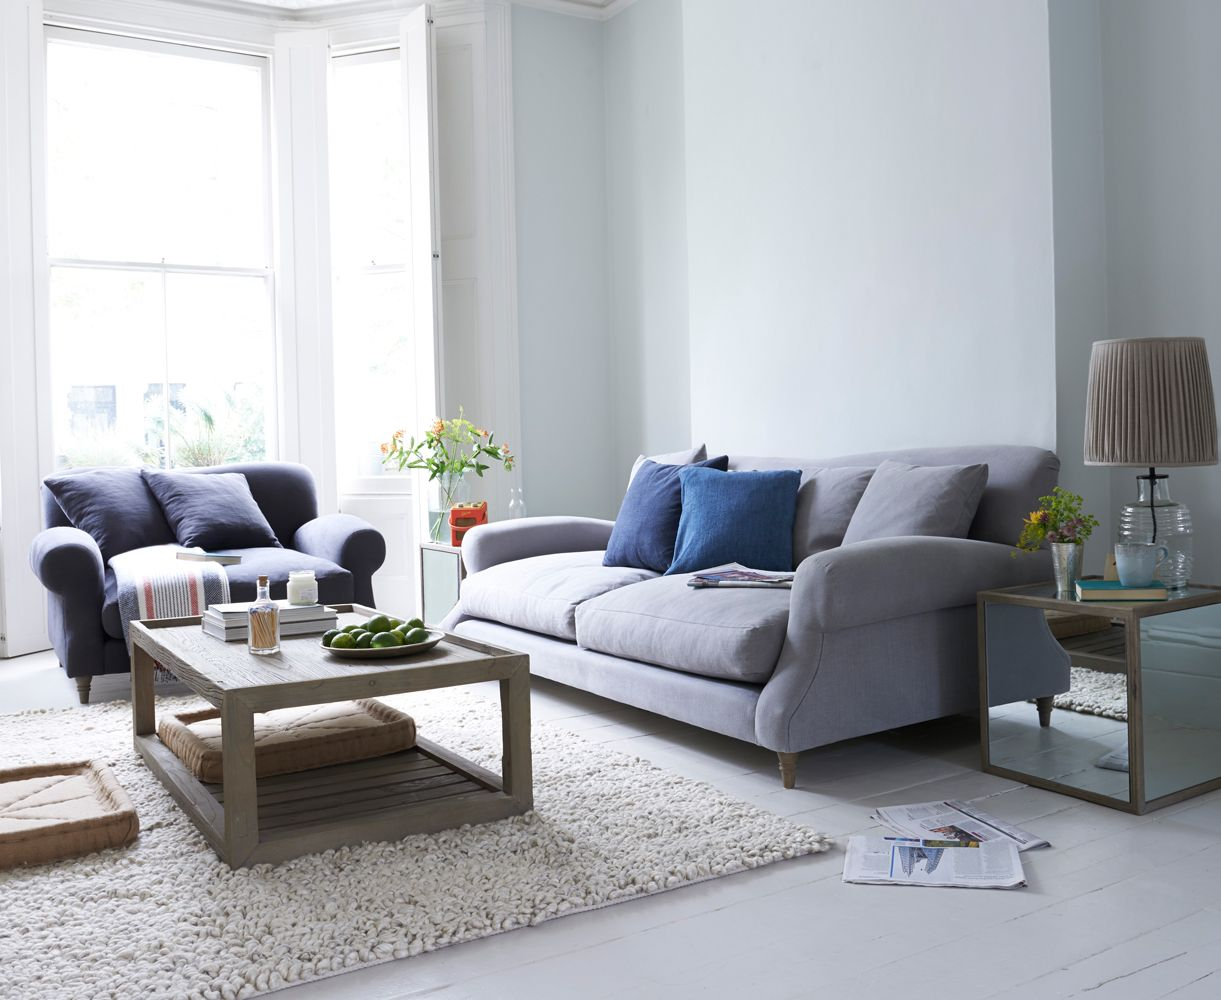 Crumpet Sofa   Pinterest   Crumpets, Classic sofa and Sitting rooms